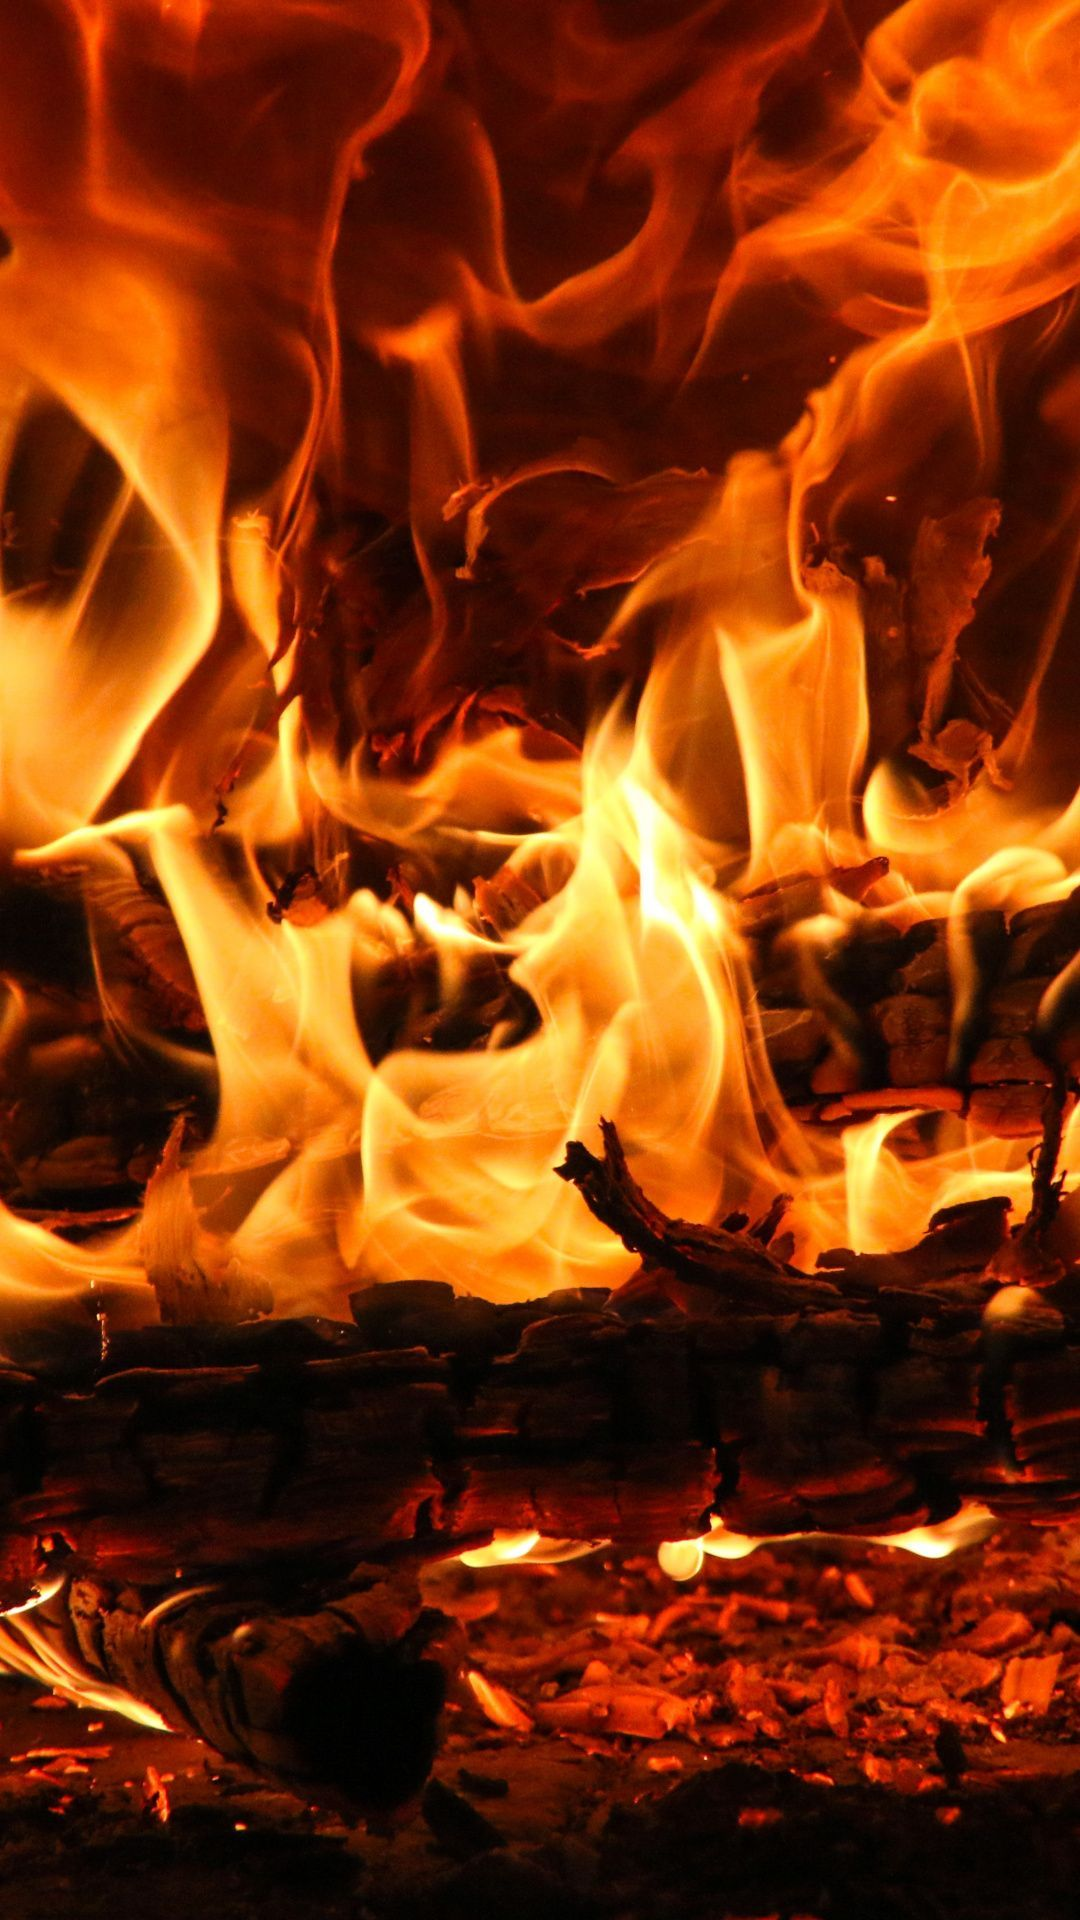 Wallpapers bonfire, combustion, ember, campfire, fire in